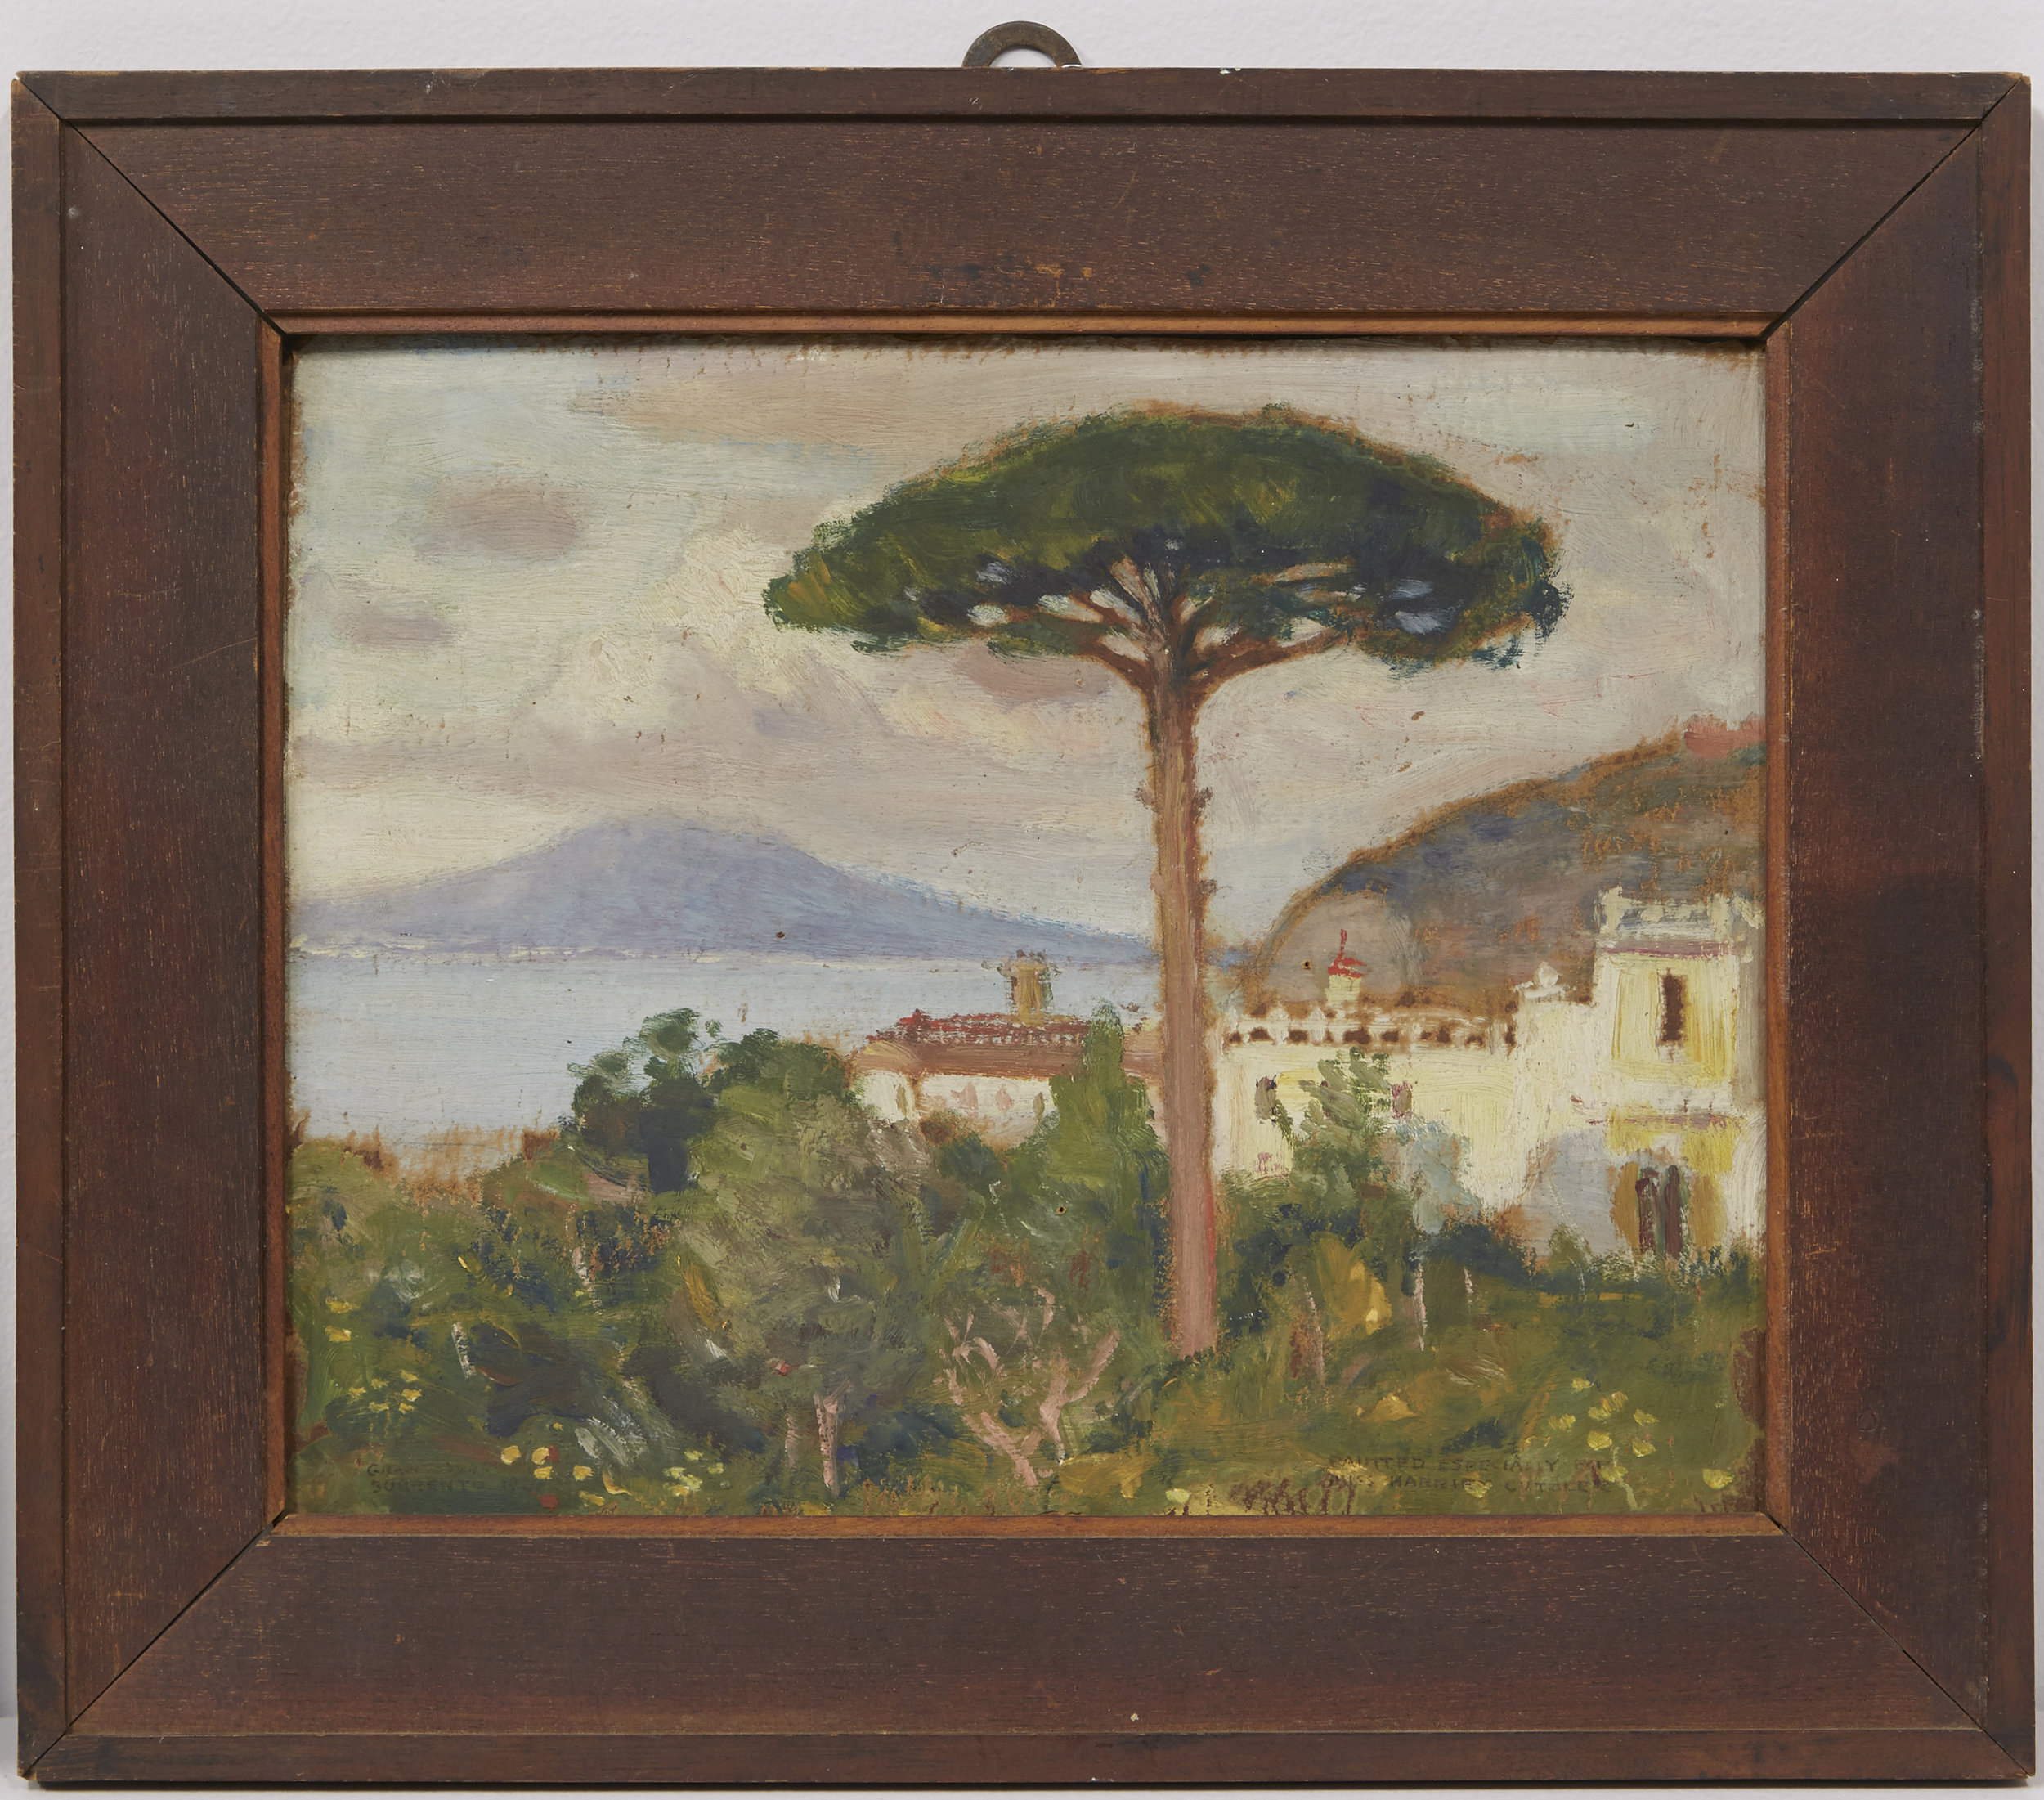 Sorrento , Grant Wood, after treatment at The Center.